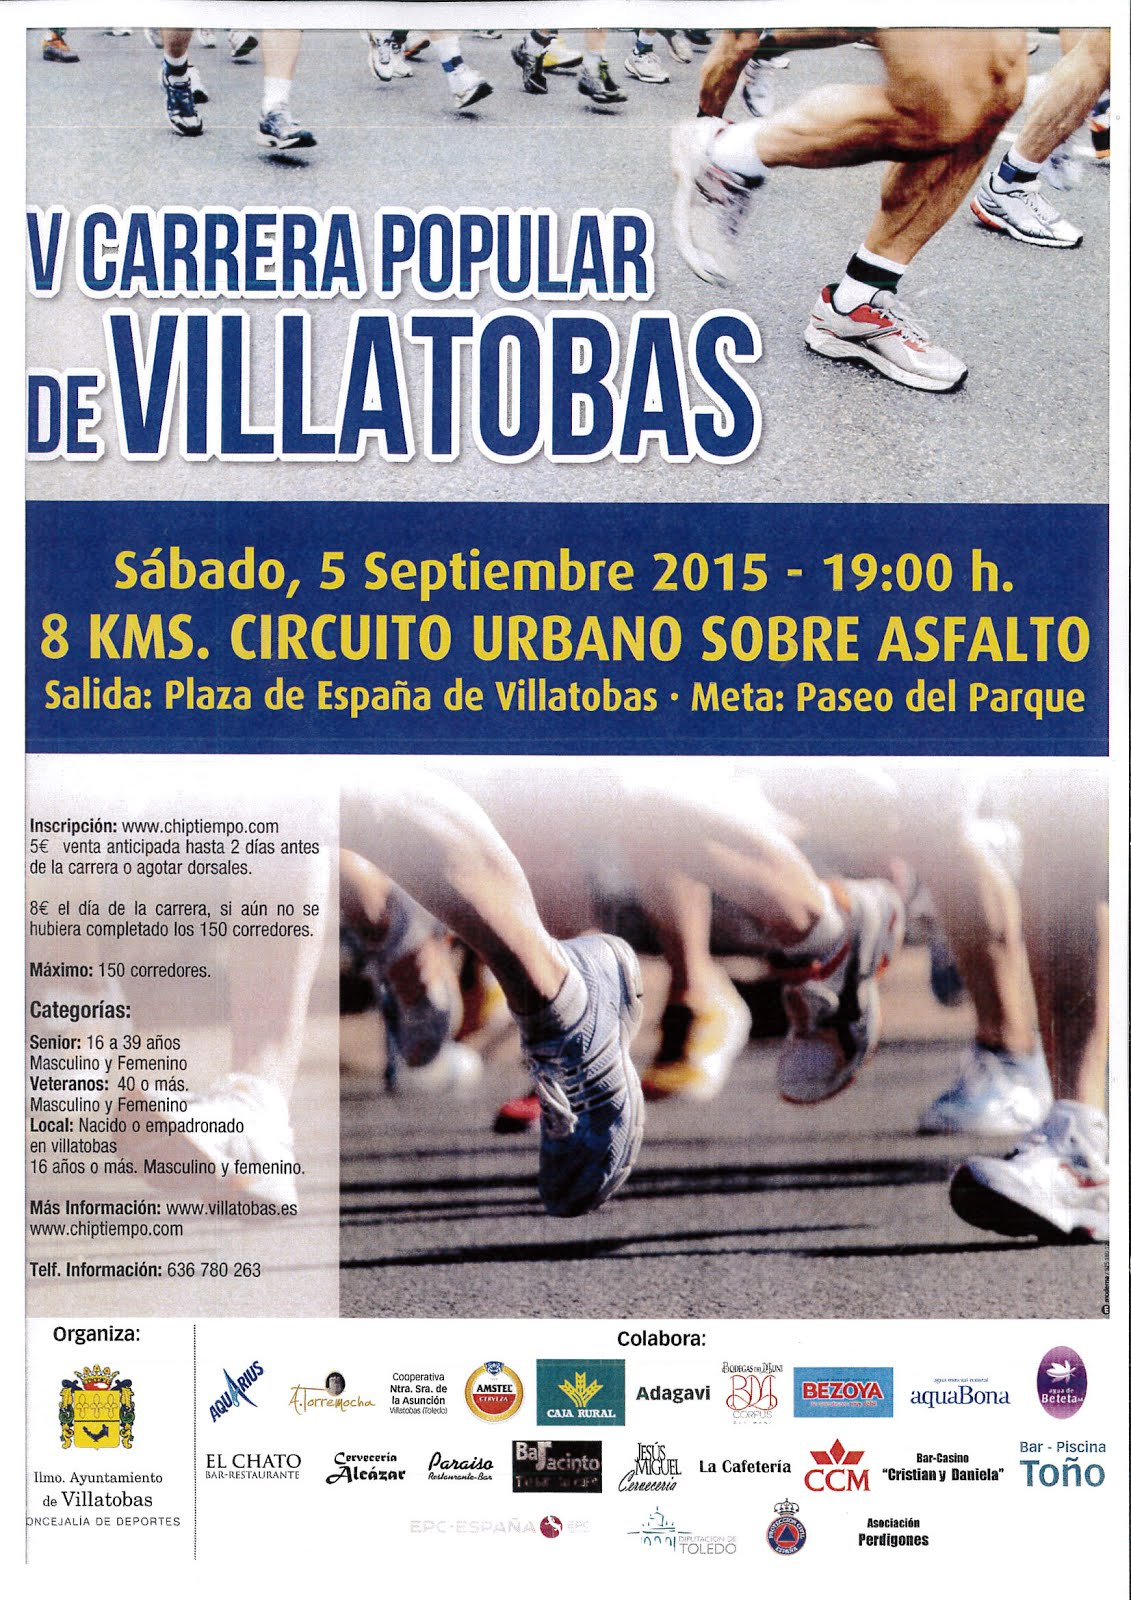 V Carrera Popular de Villatobas